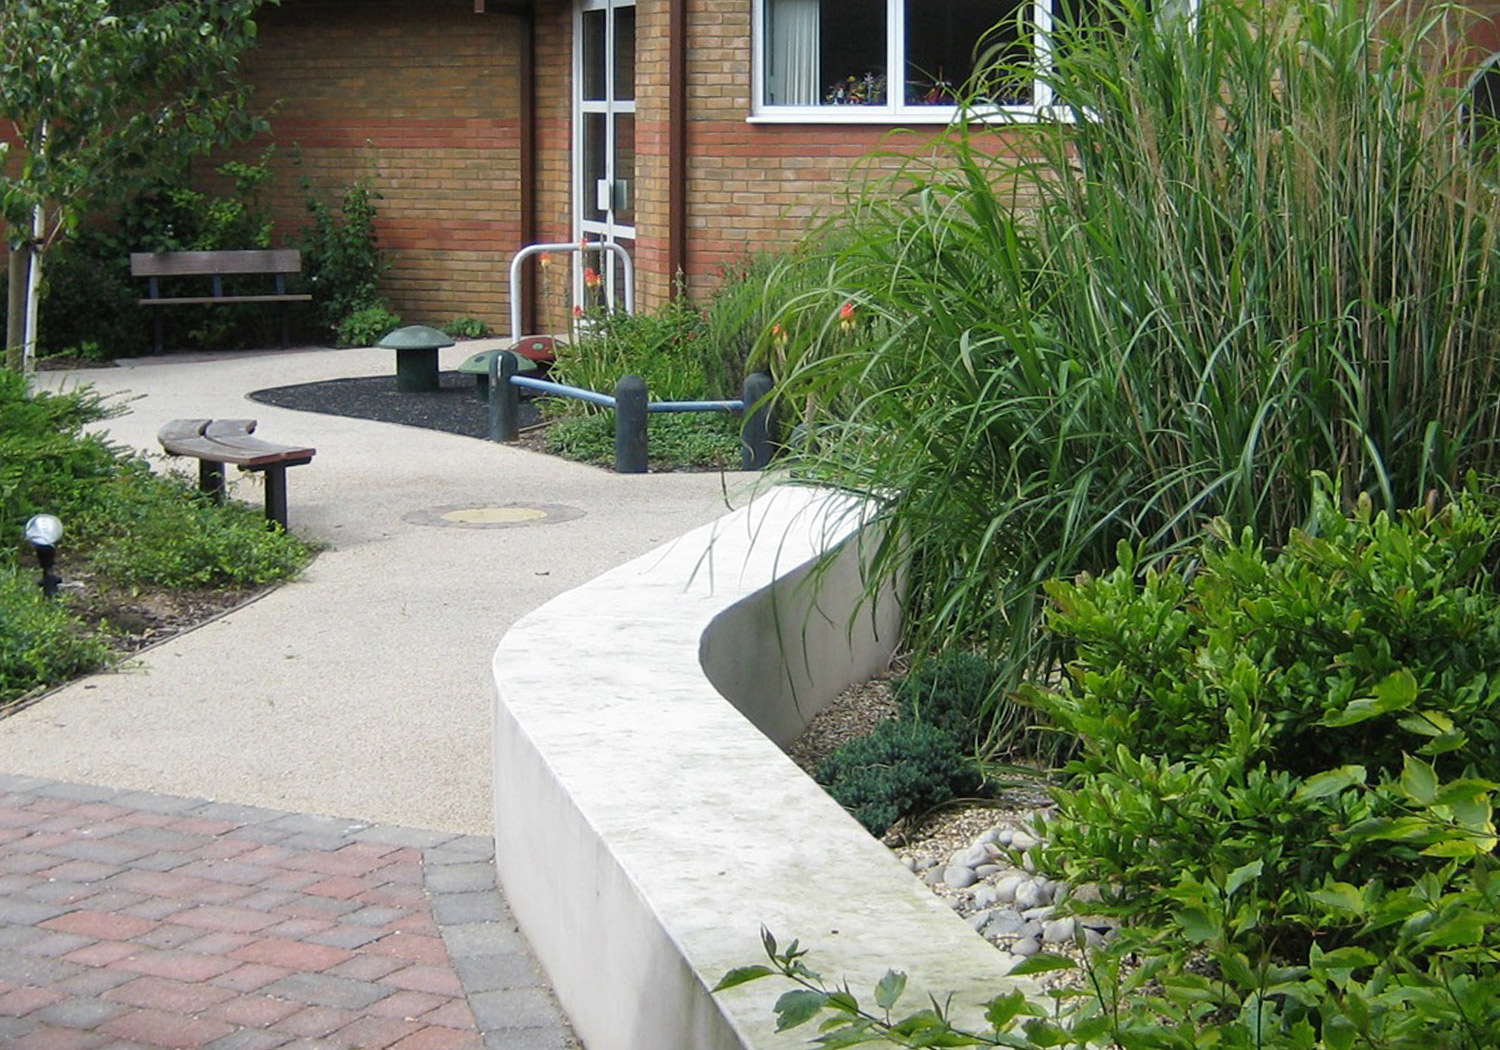 Projects-Education-ElmstowPrimary-Wall-1500x1050